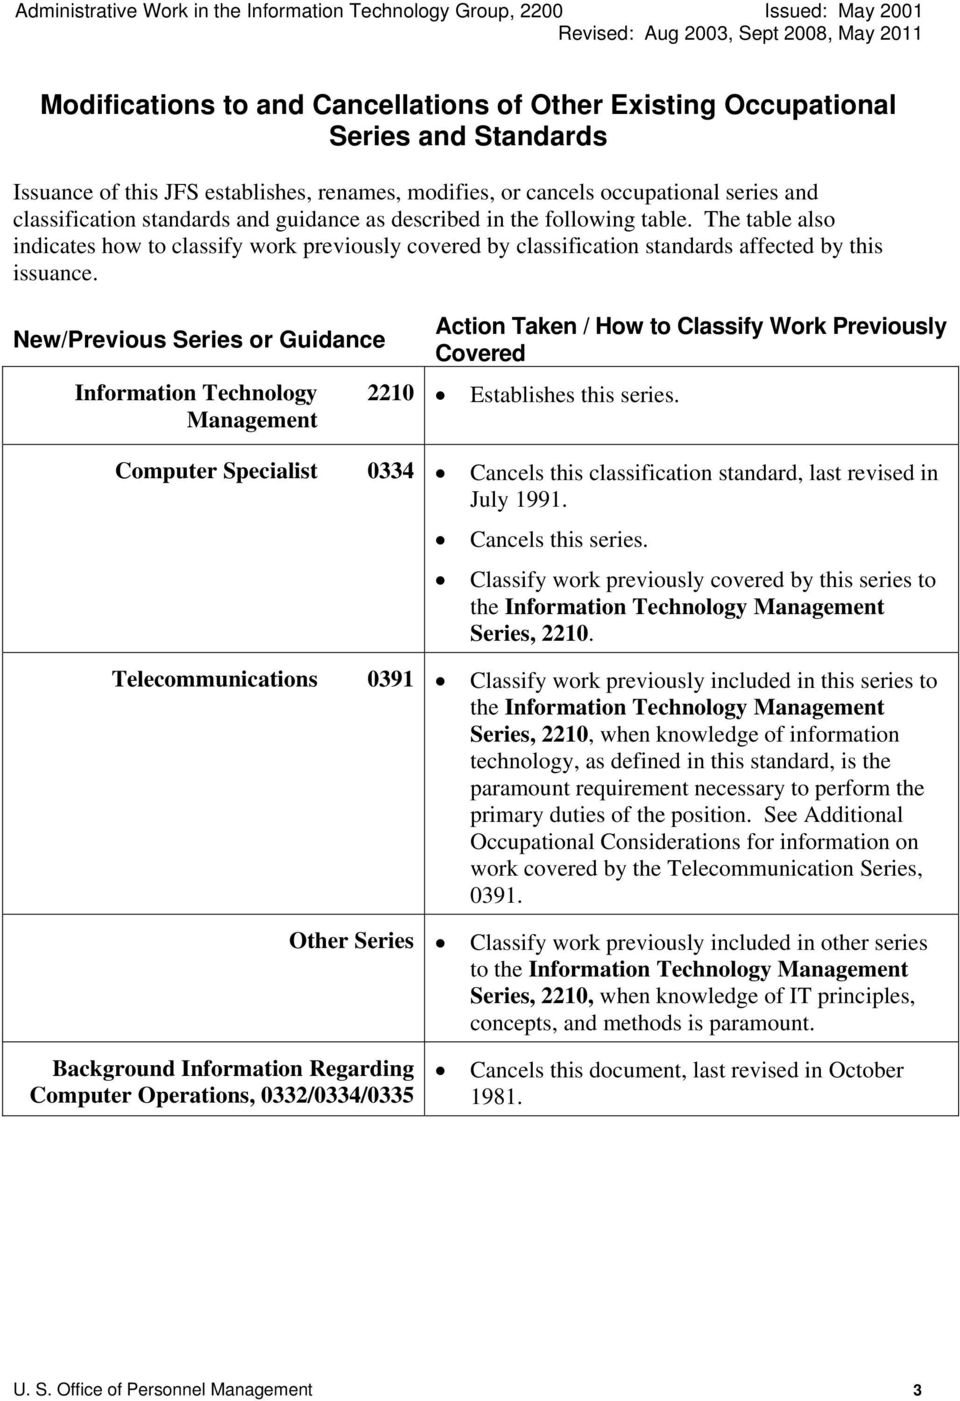 New/Previous Series or Guidance Information Technology Management Action Taken / How to Classify Work Previously Covered 2210 Establishes this series.